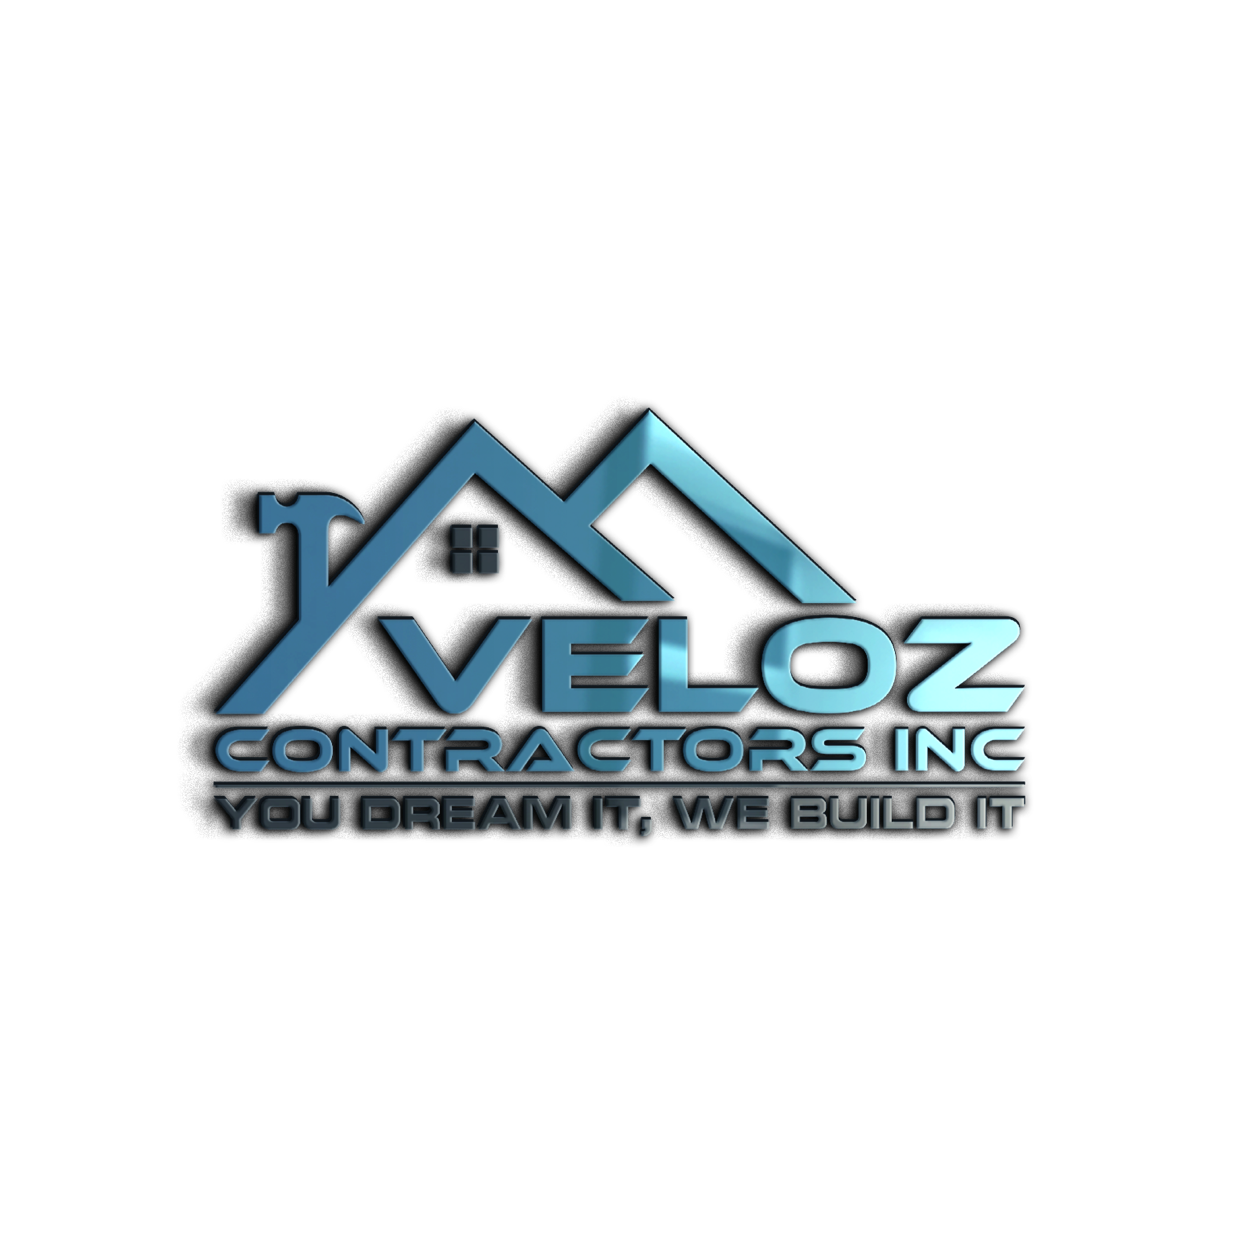 Veloz Contractors Inc. logo